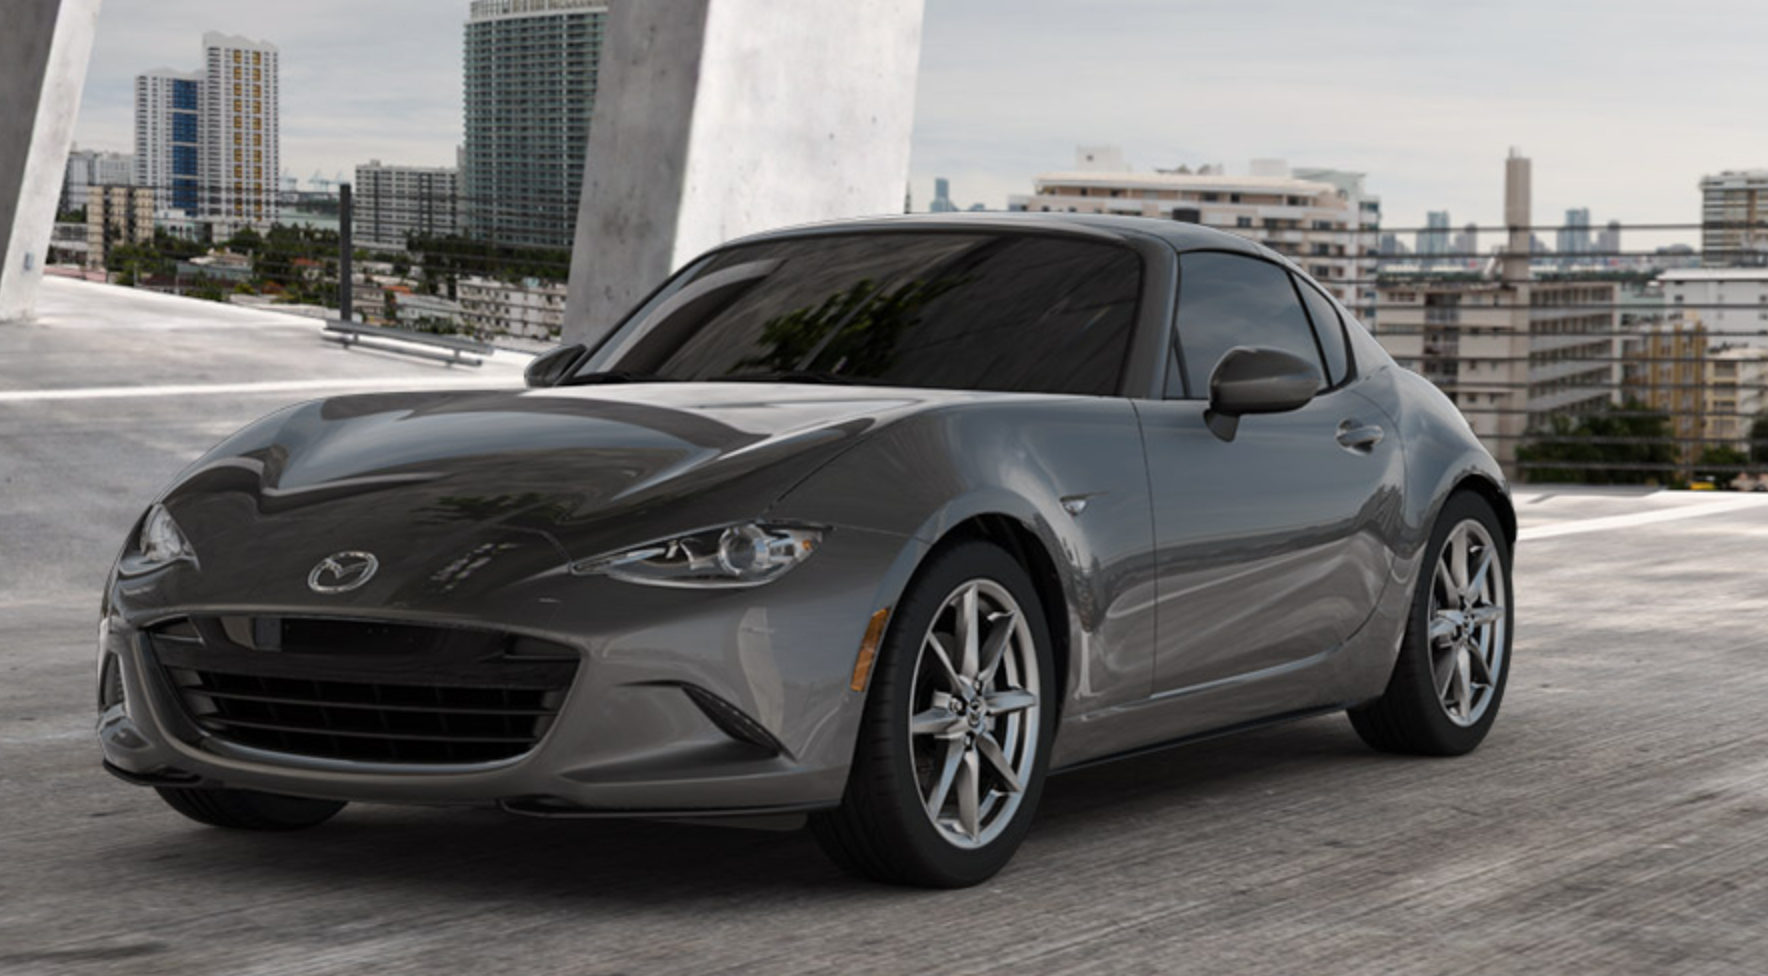 The 10 best performance cars and sports cars under 40k